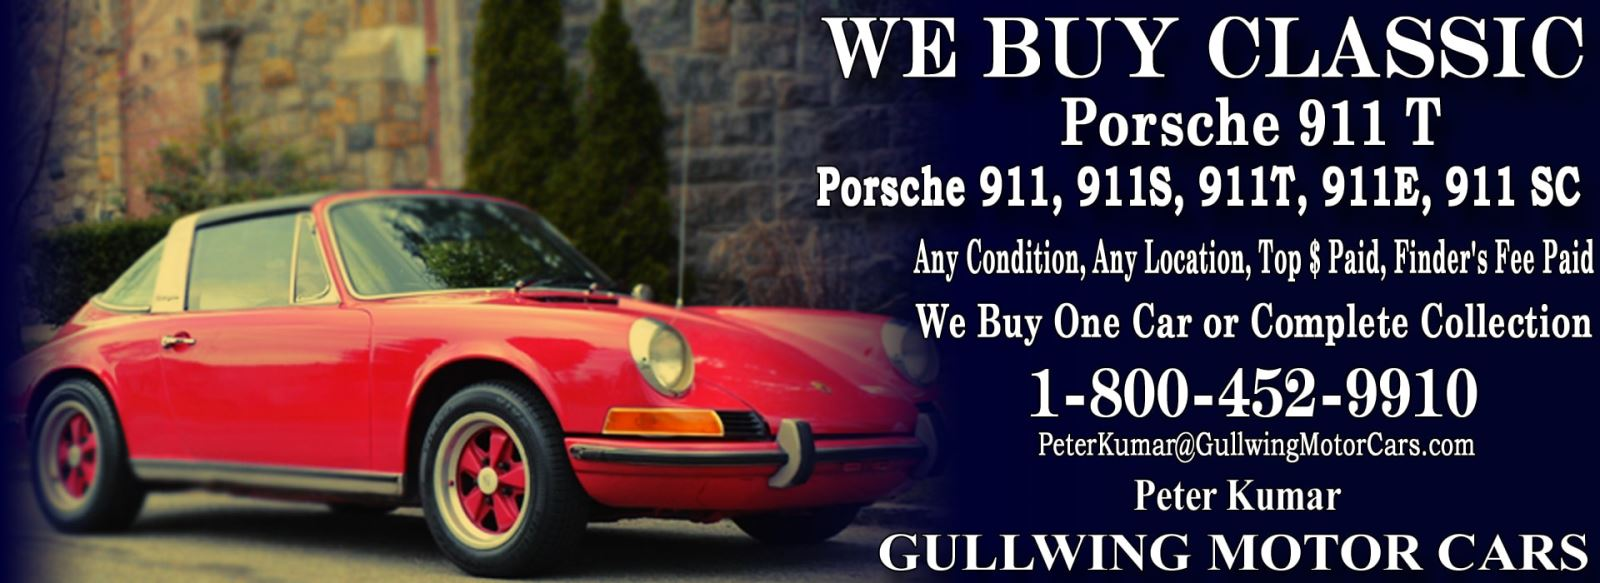 Classic Porsche 911T for sale, we buy vintage Porsche 911T. Call Peter Kumar. Gullwing Motor